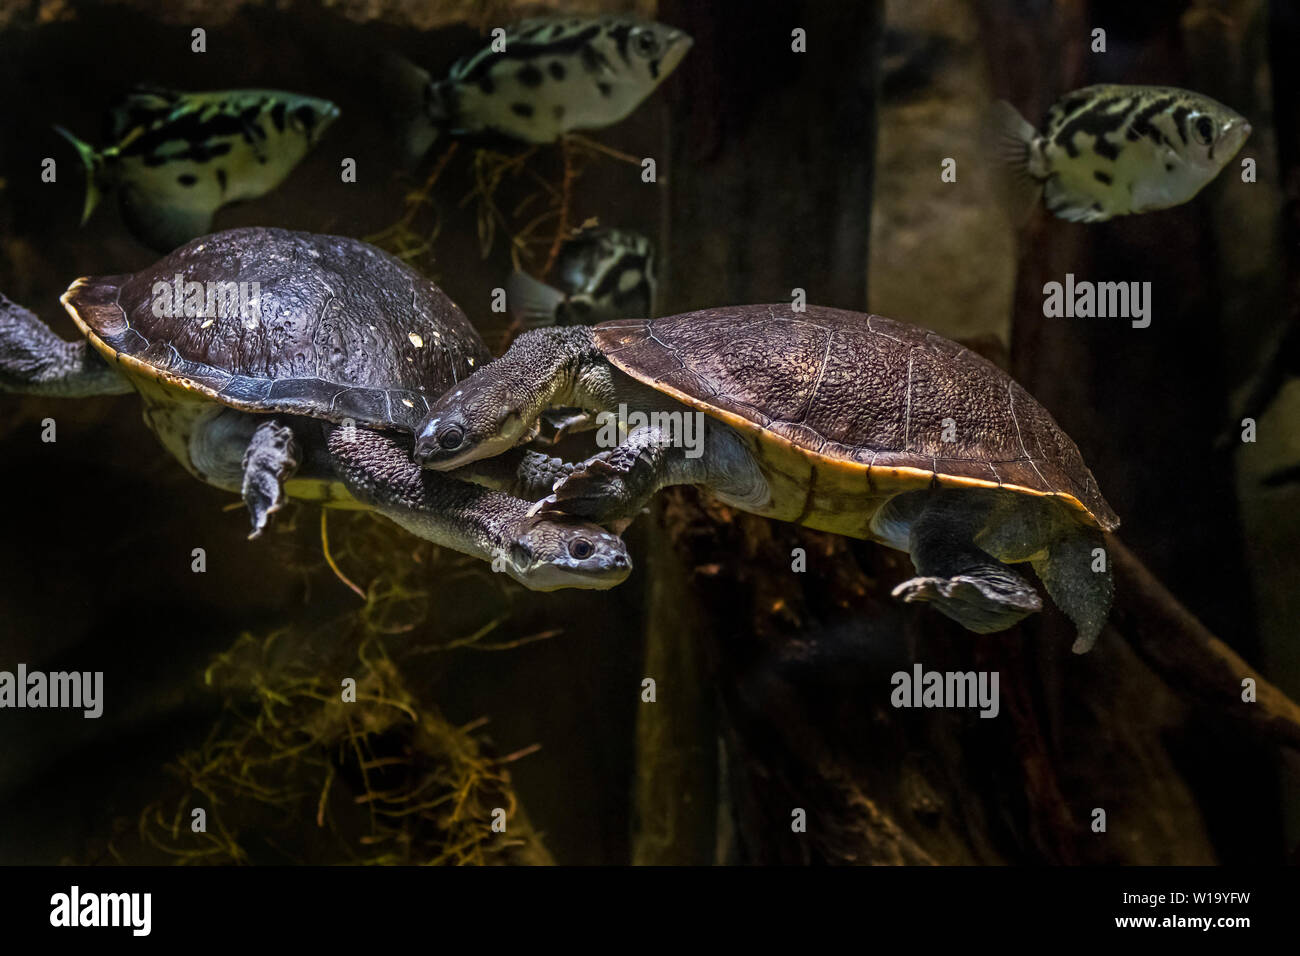 Couple of Roti Island snake-necked turtles / McCord's snakeneck turtle (Chelodina mccordi ) swimming underwater in pond, native to Indonesia - Stock Image